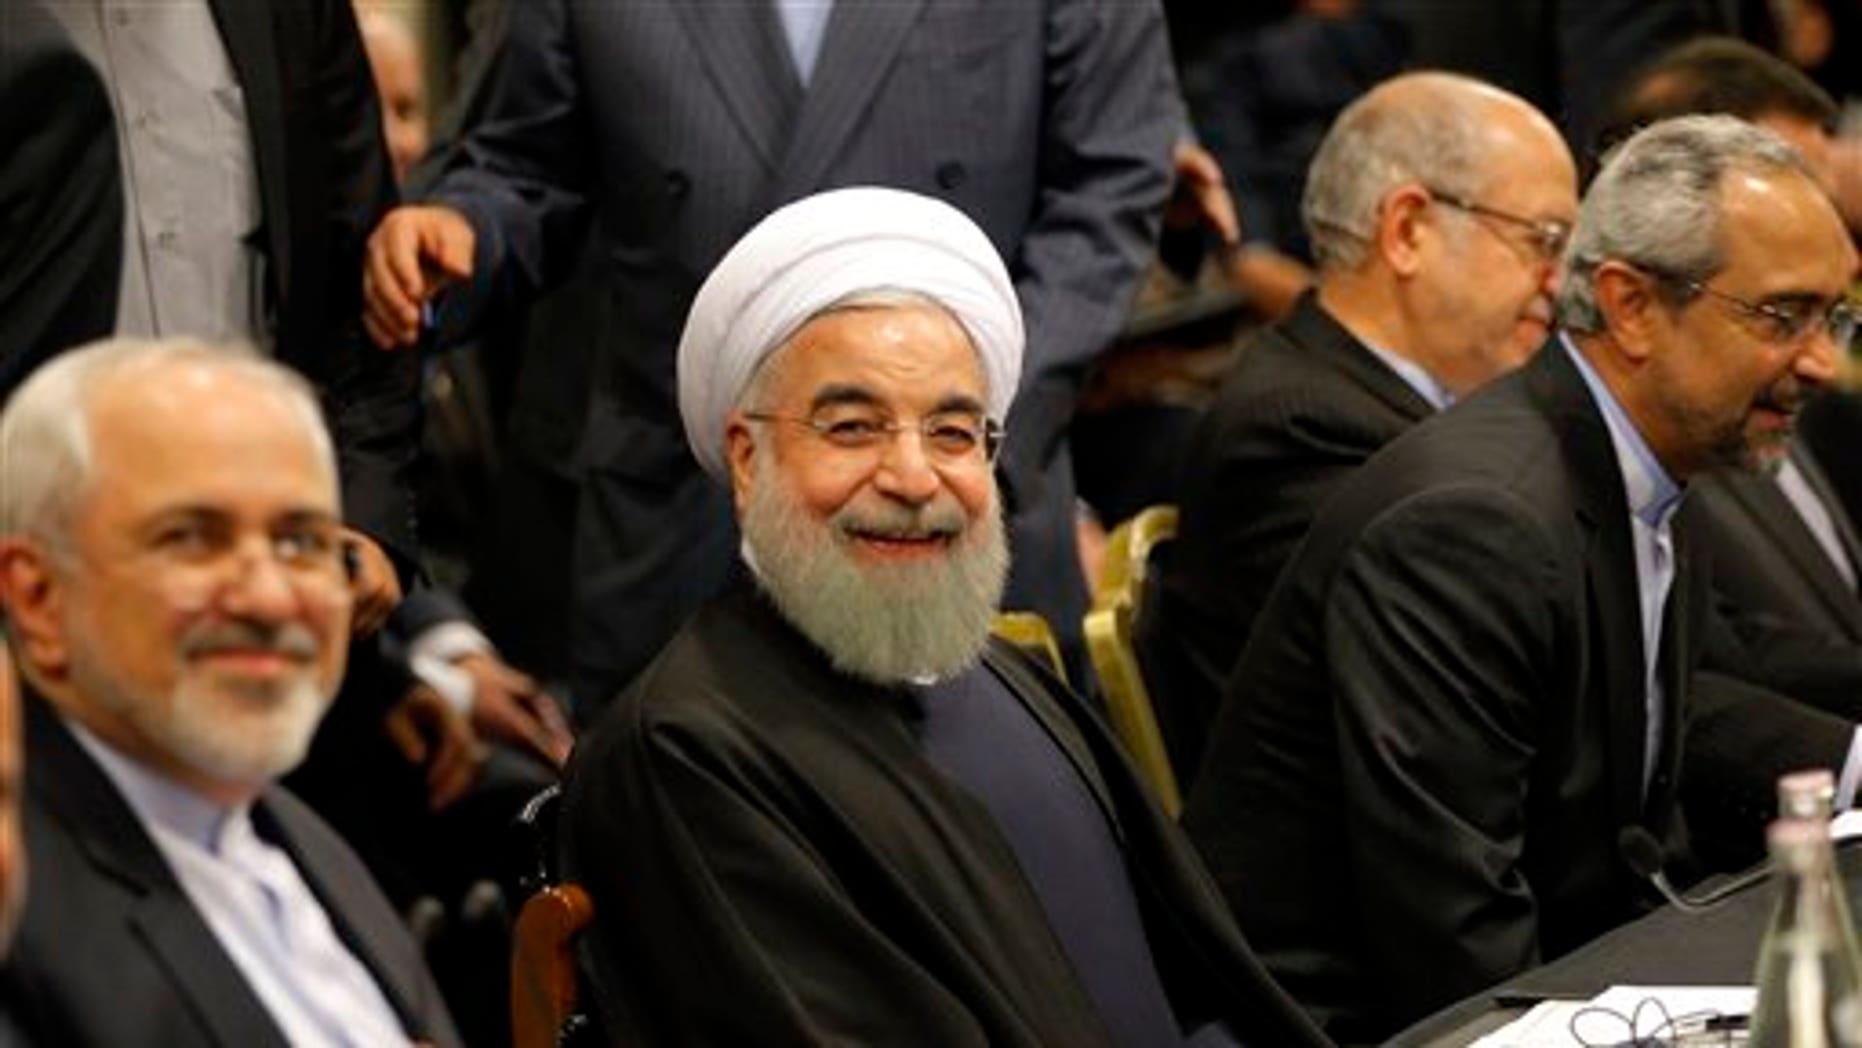 "Iranian President Hassan Rouhani smiles ahead of a meeting in Paris, Wednesday, Jan. 27, 2016. Rouhani says his first visit to Europe since the nuclear accord was signed has proven that there are ""great possibilities"" for economic, academic, scientific and cultural cooperation and that ""today we are in a win-win situation"" after years of mutual losses due to sanctions. (AP Photo/Christophe Ena)"